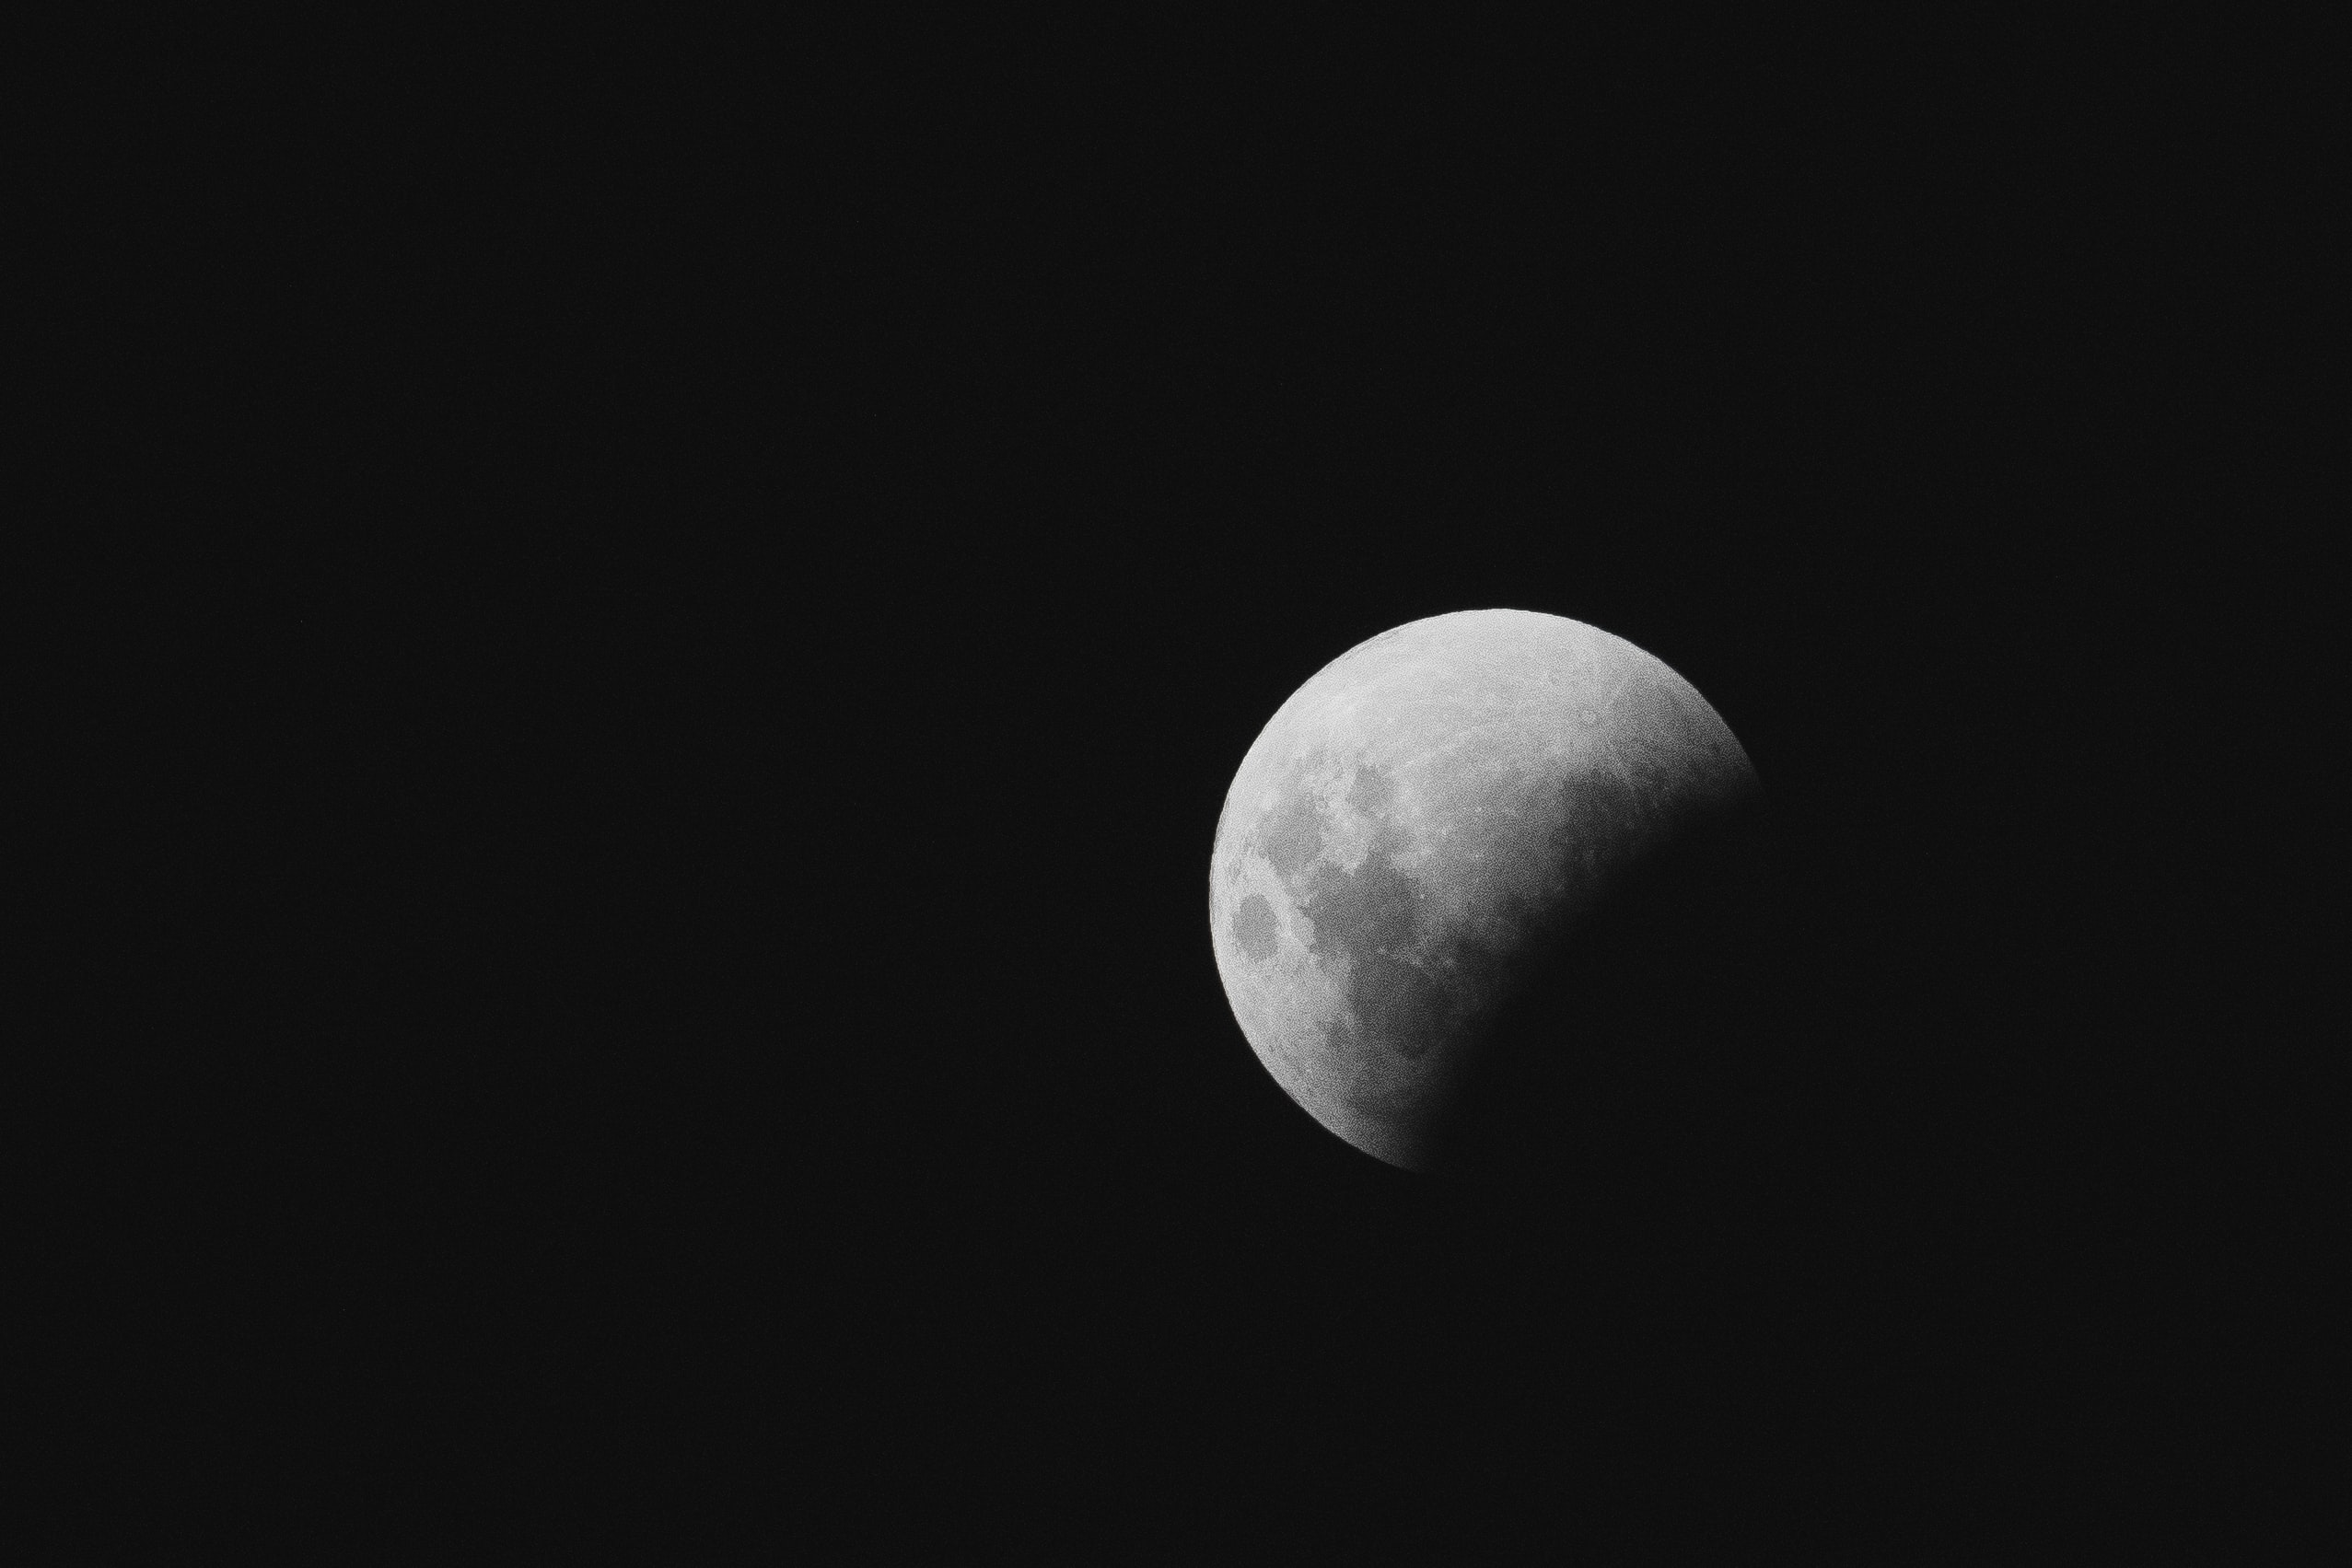 gray moon photograph